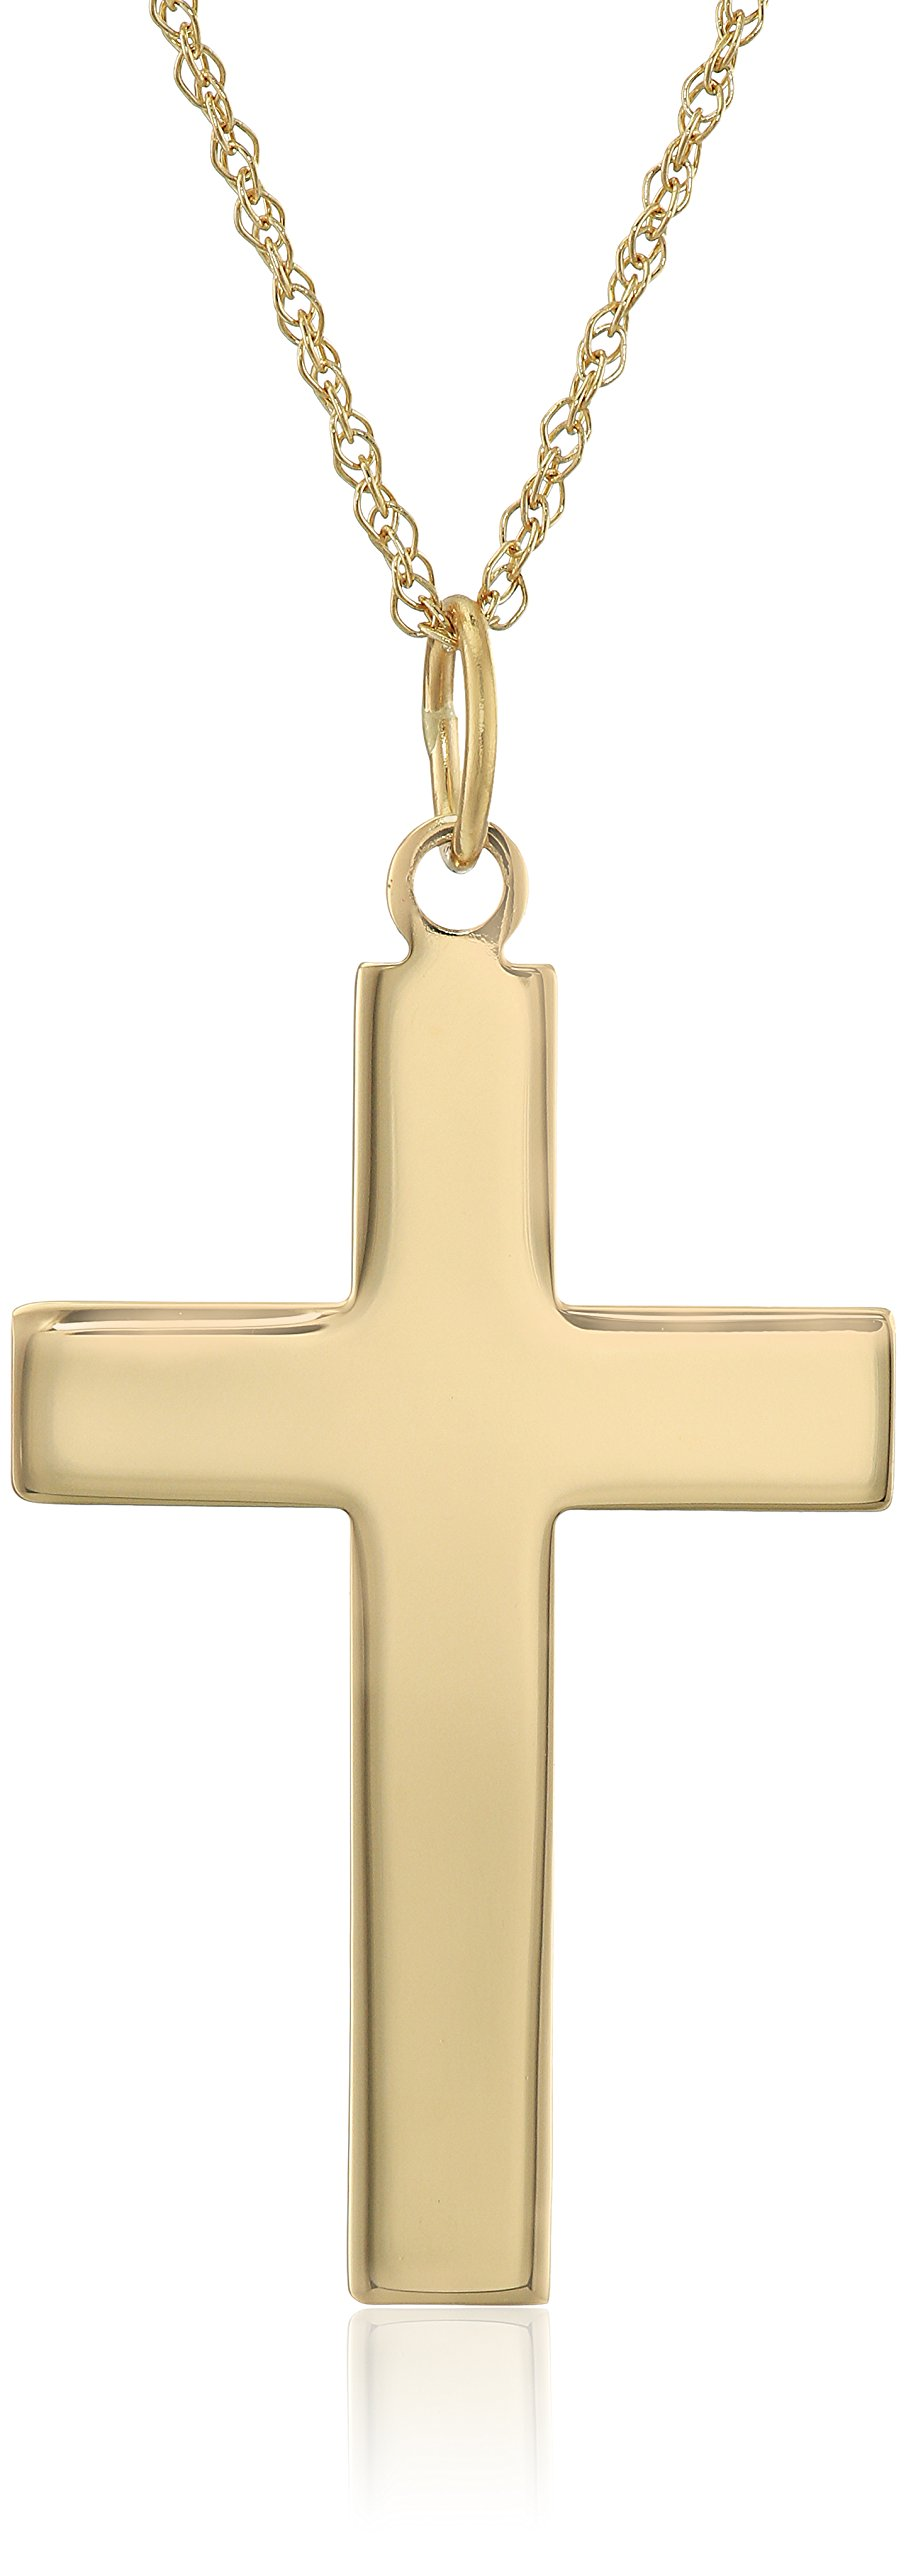 Men's 14k Yellow Gold Solid Large Polished Cross Pendant Necklace, 20''